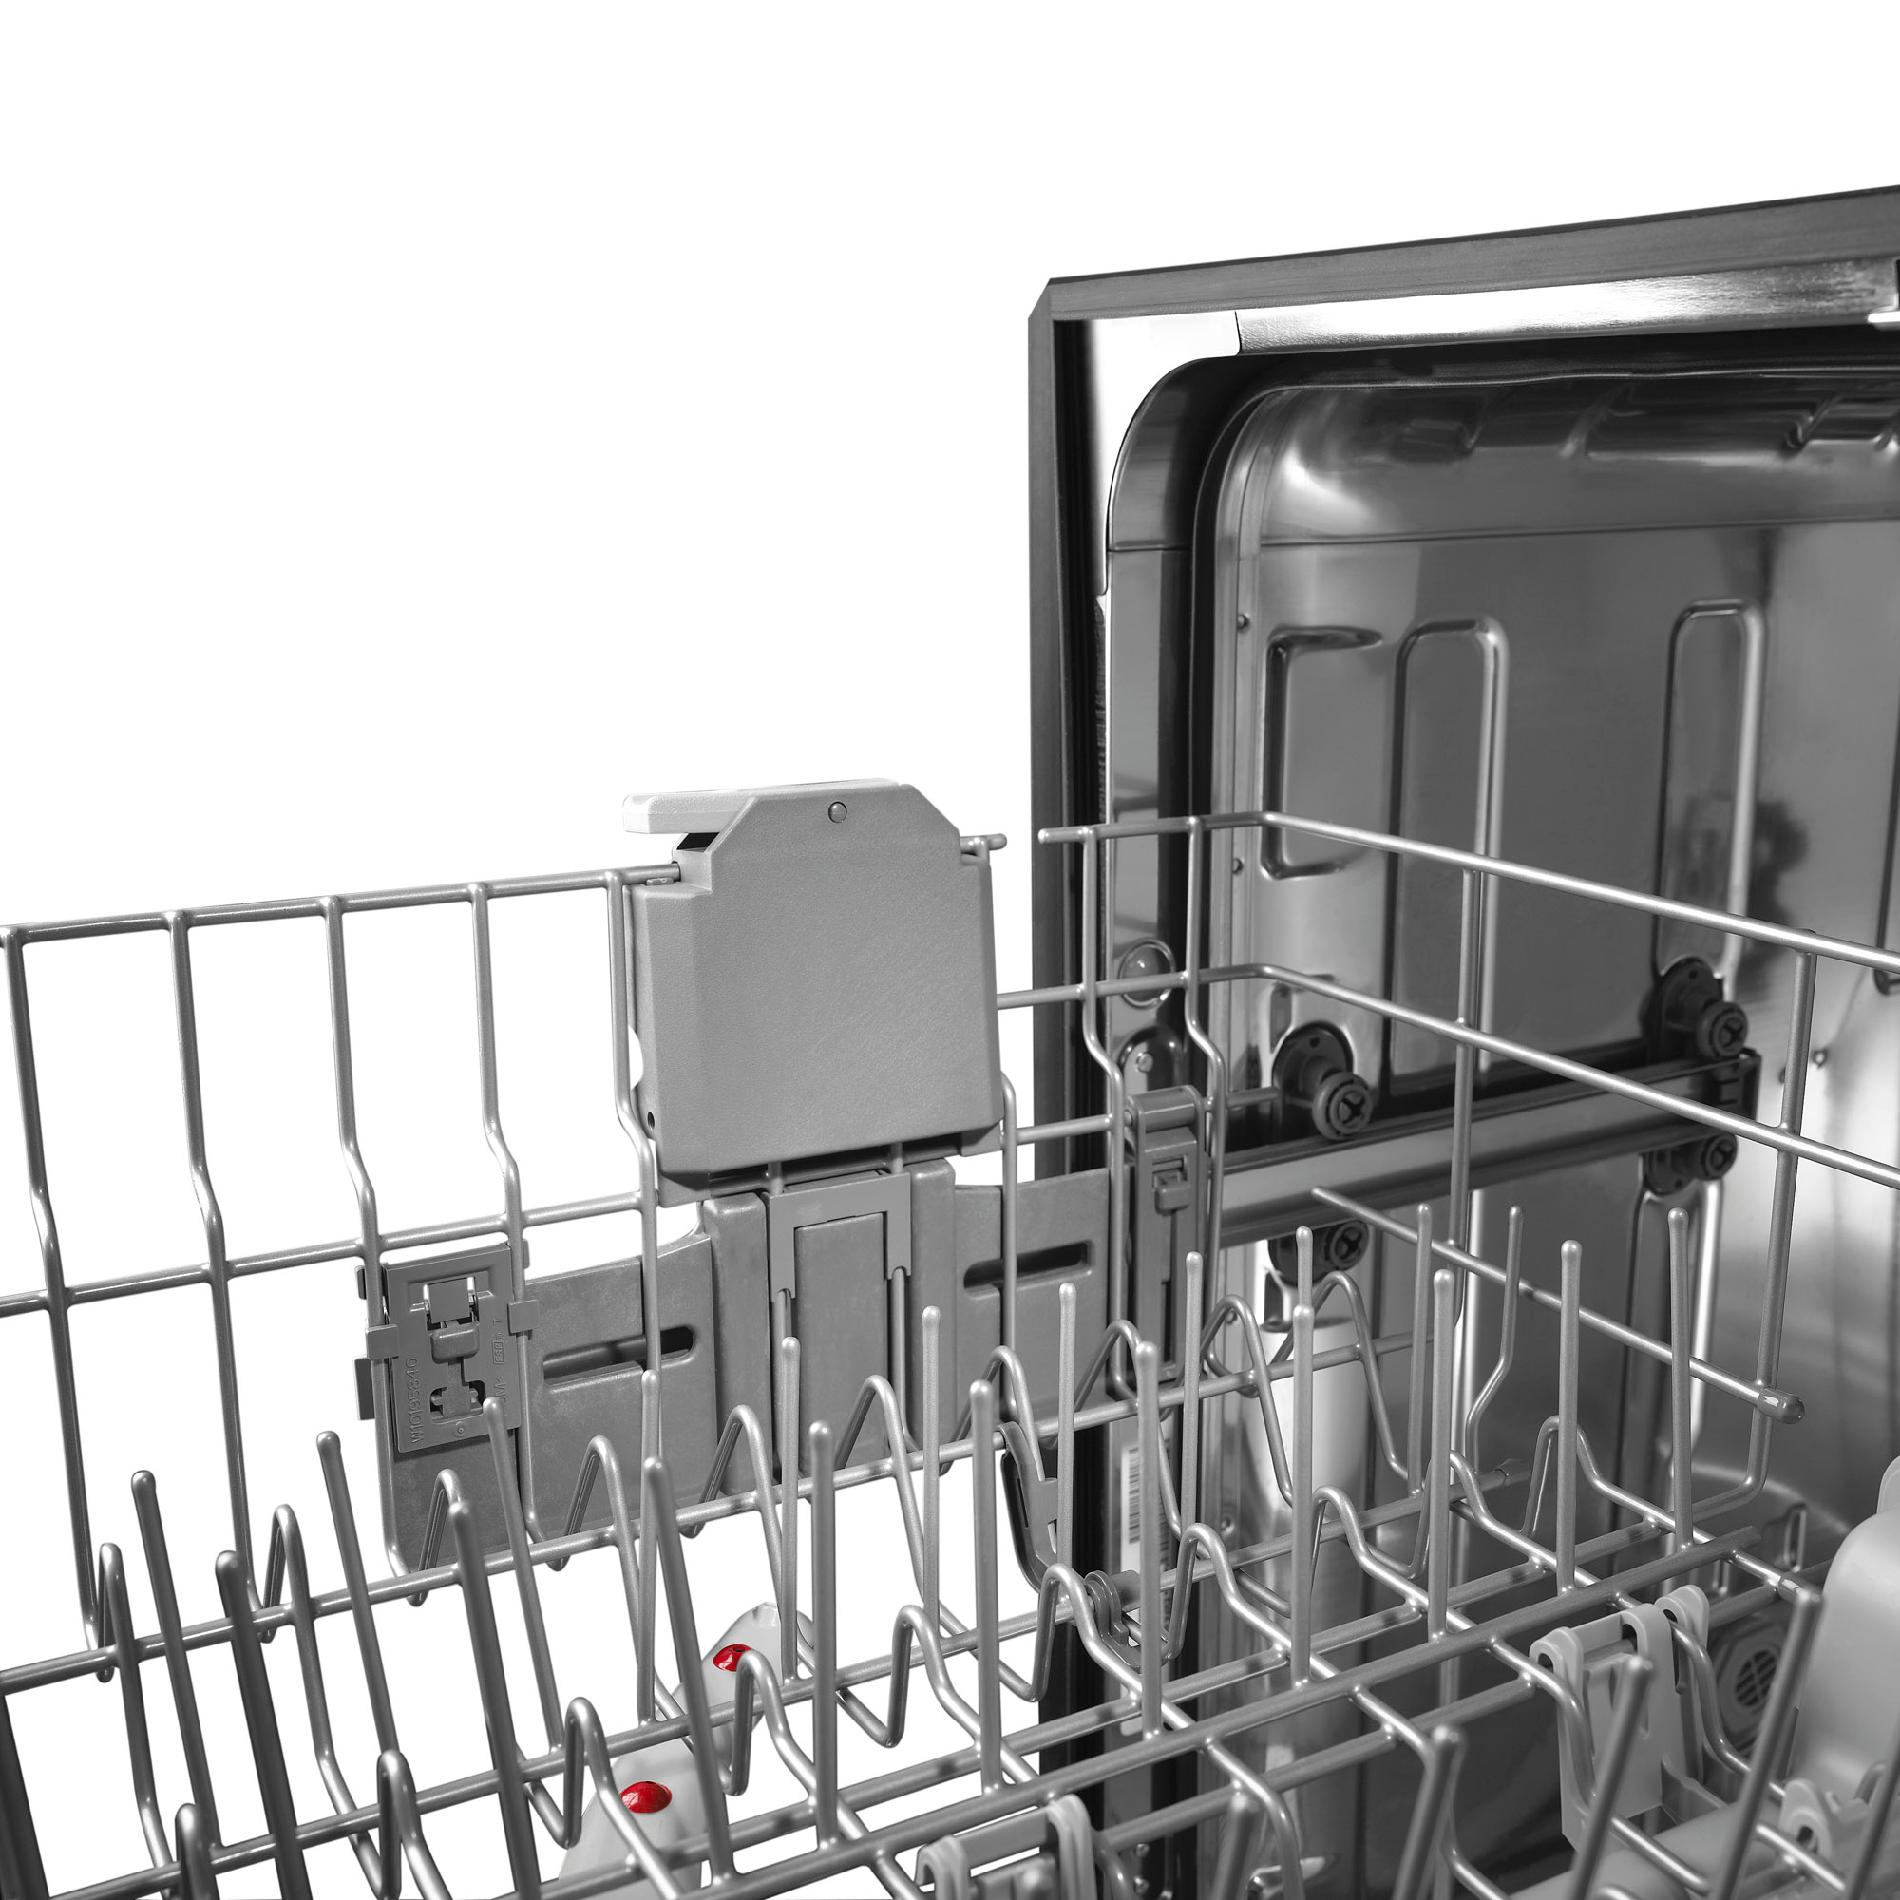 """Kenmore 24"""" Built-In Dishwasher w/ Stainless-Steel Tub - Stainless Steel"""